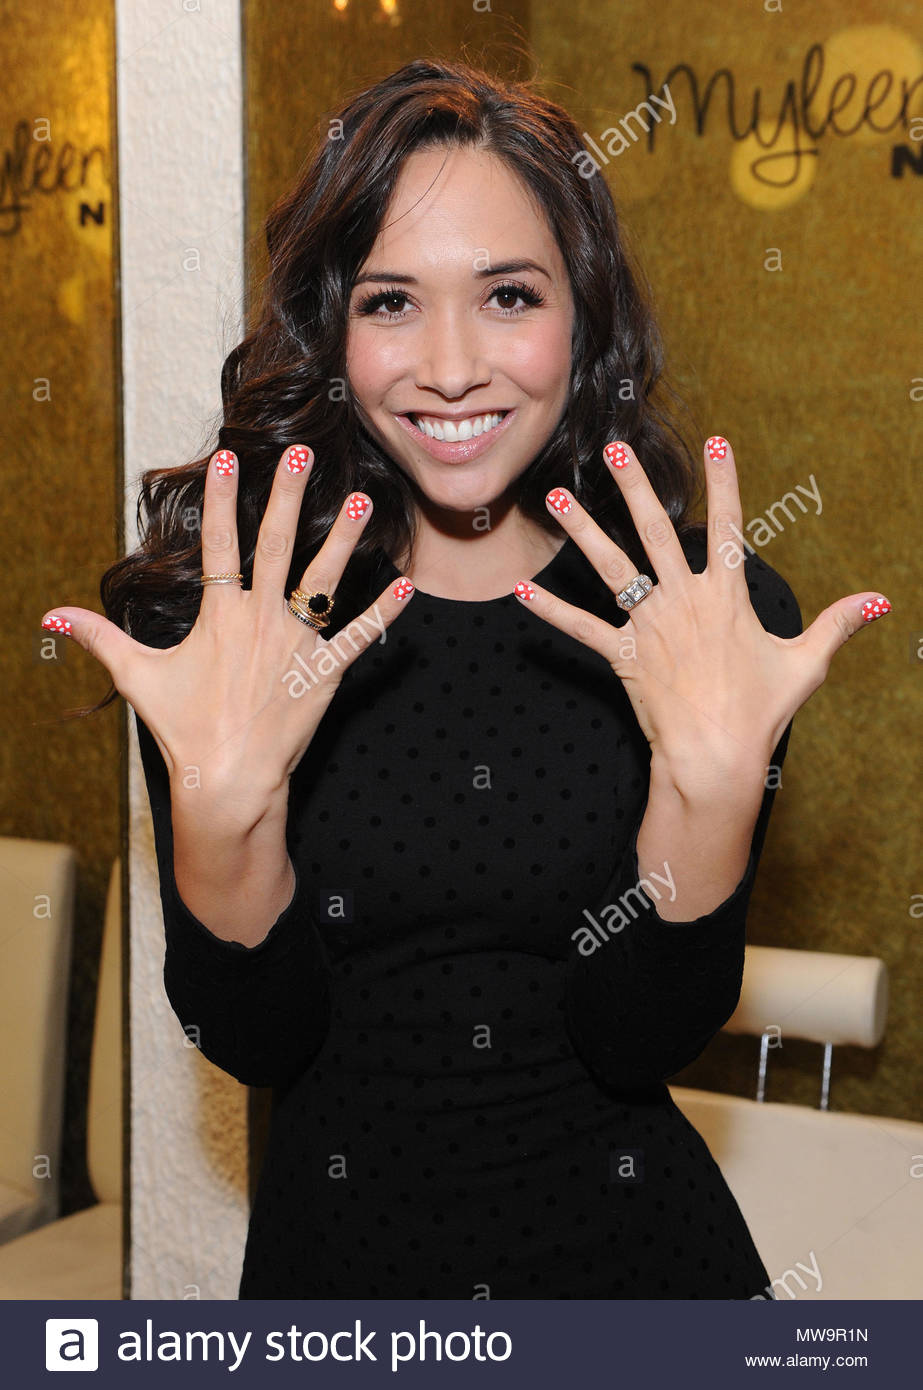 Myleene Klass Myleene Klass Launches Myleene Klass Nails Her New